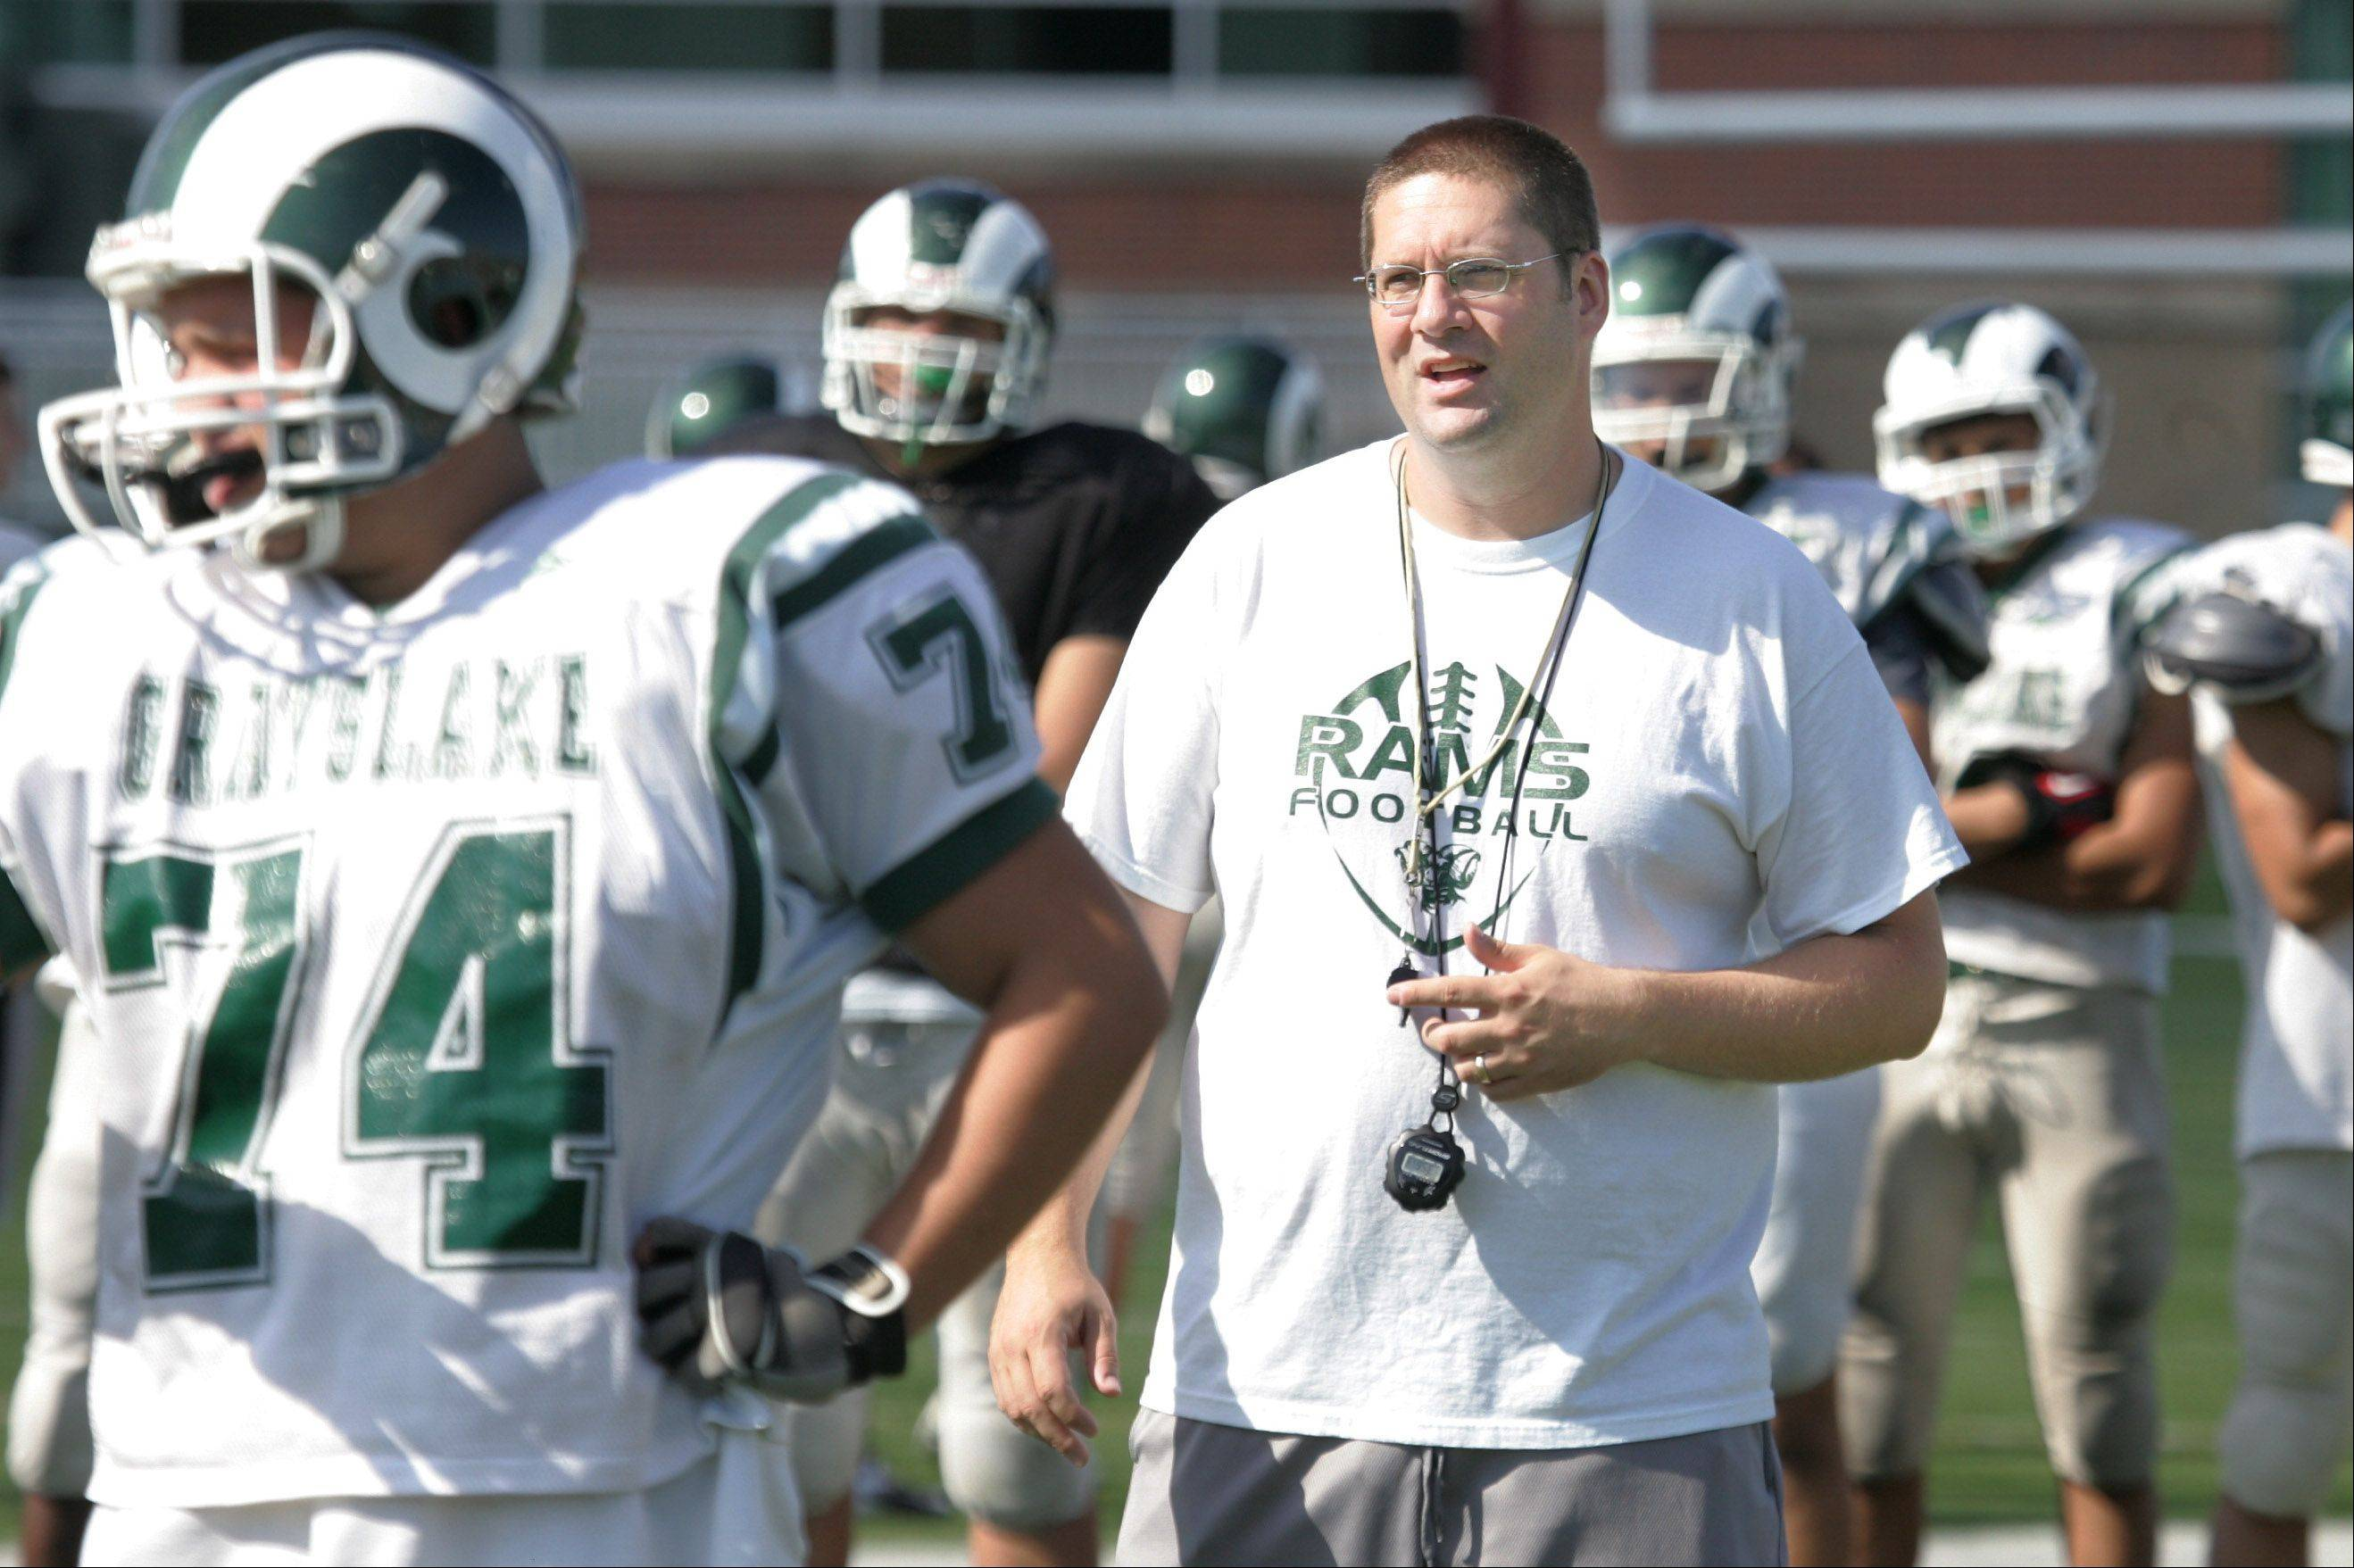 Grayslake Central's new coach, Ben Ault, hopes to sustain the program's recent playoff successes.